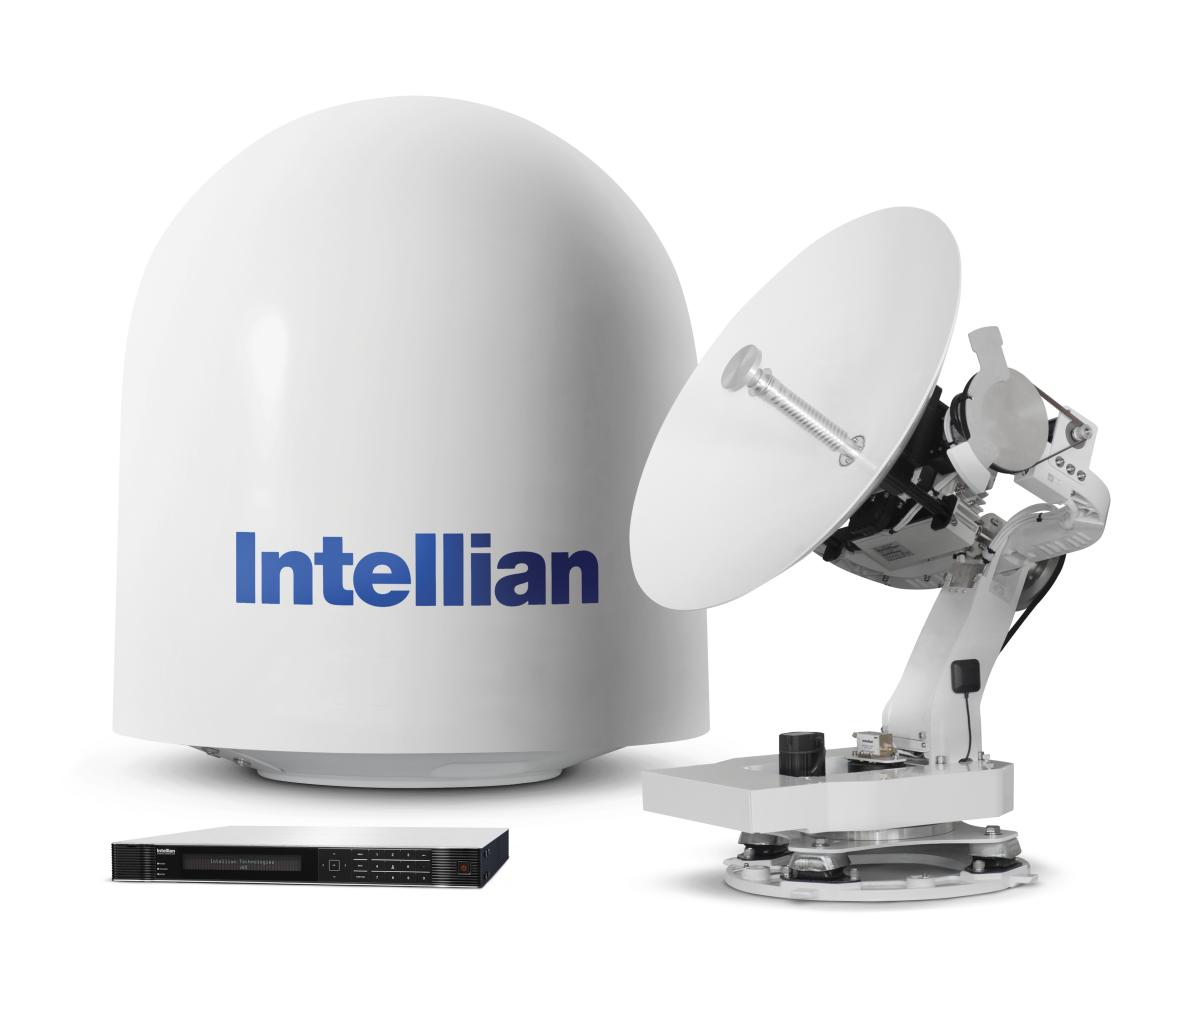 Intellian v65